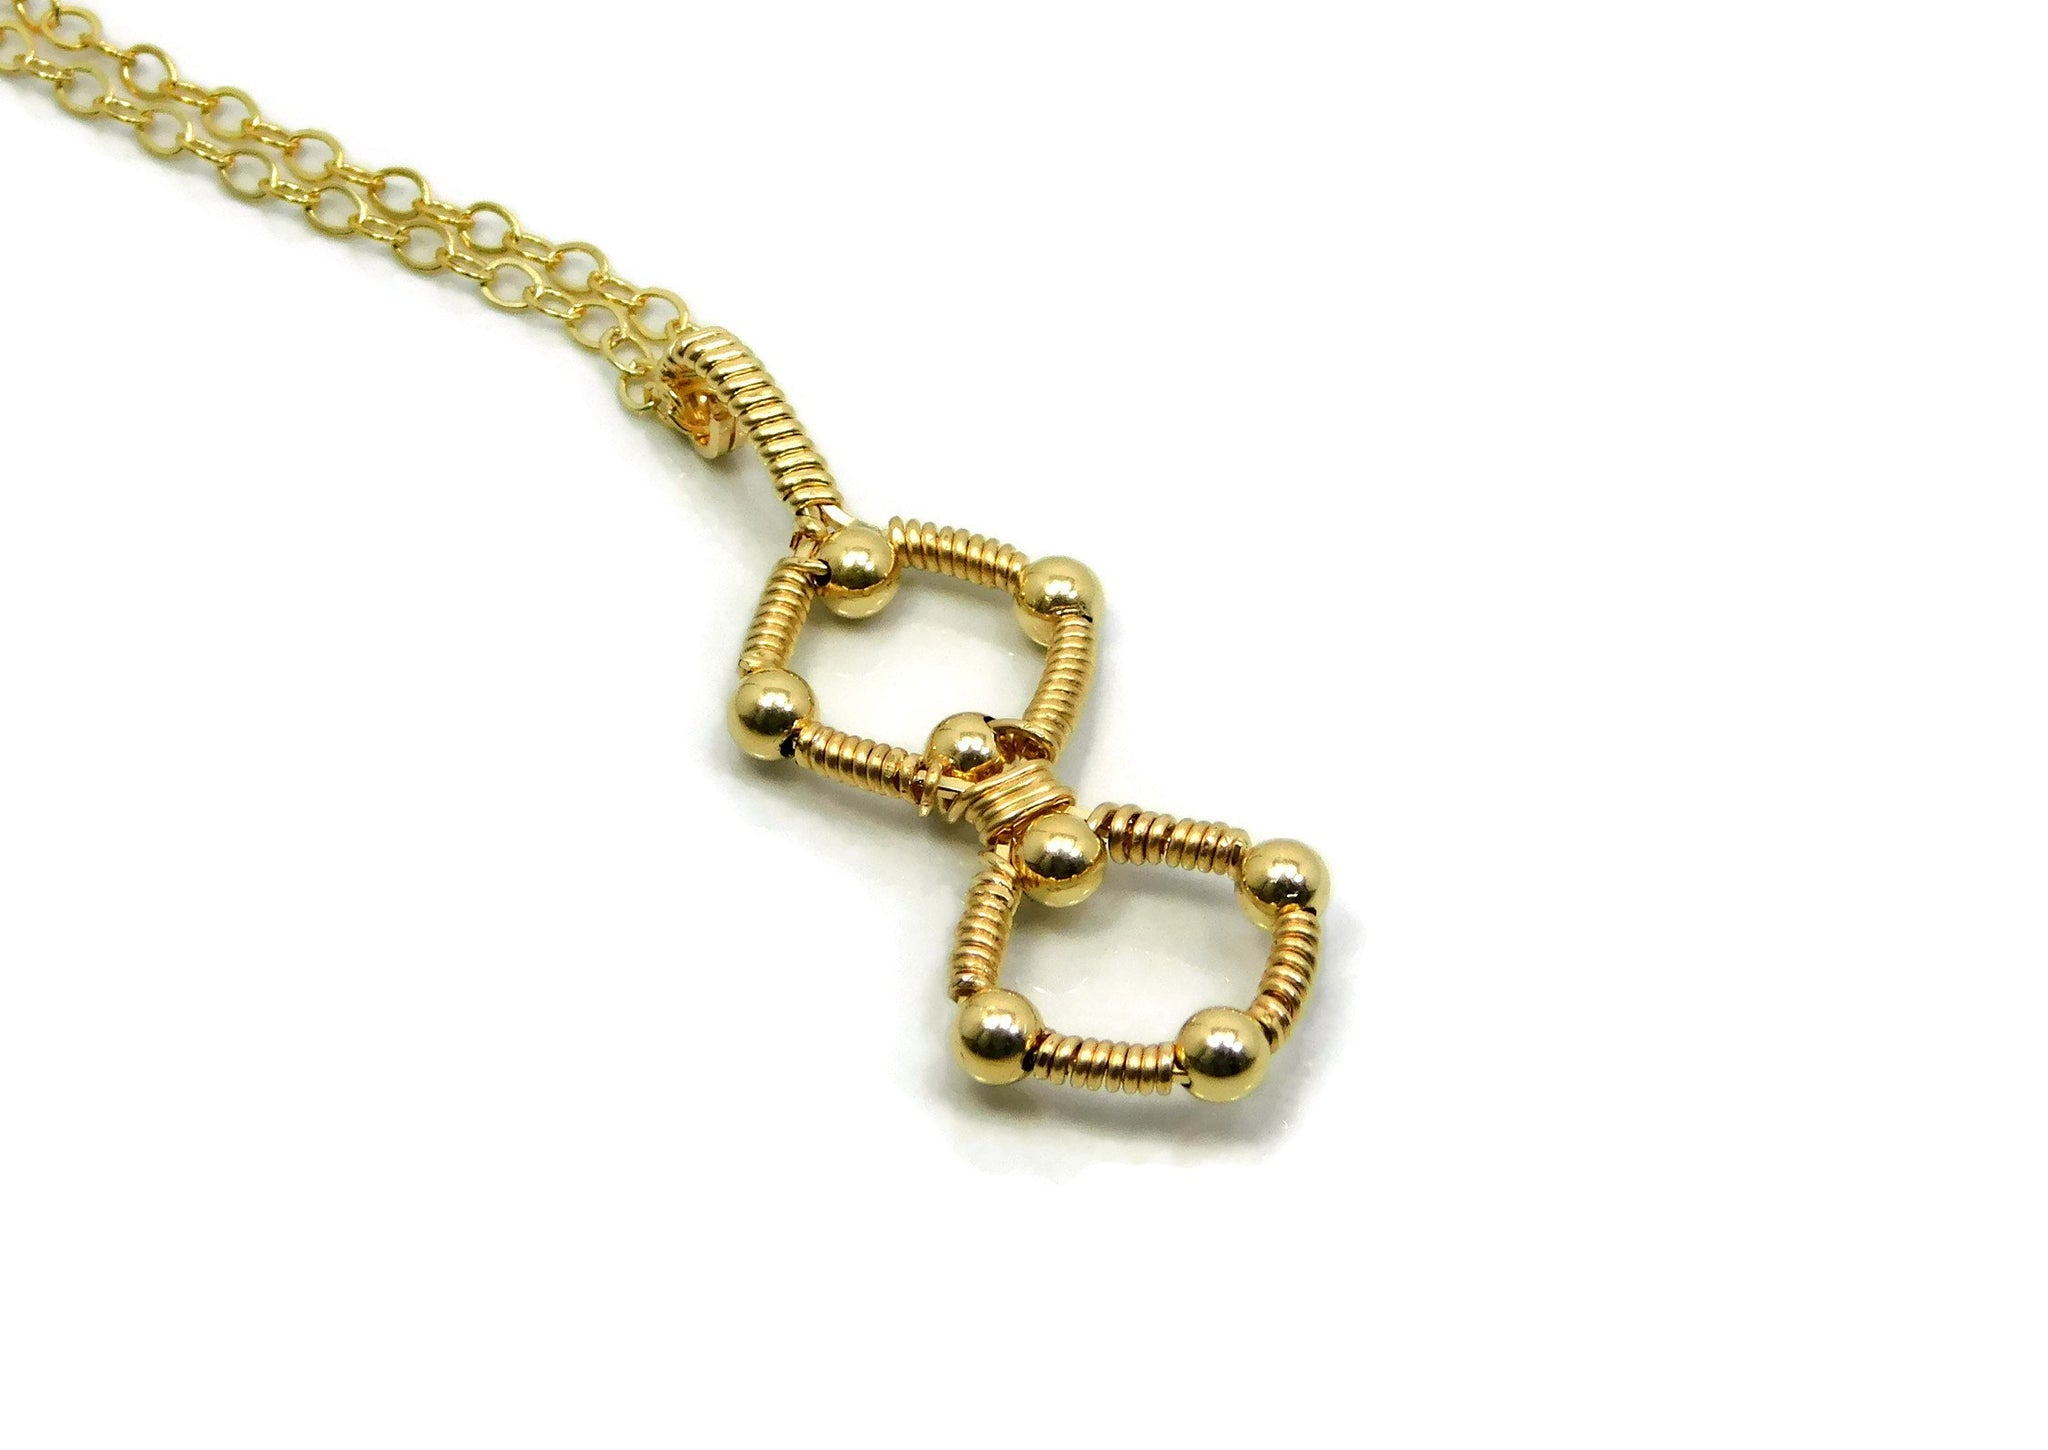 14kt Gold Fill Double Profile Pendant